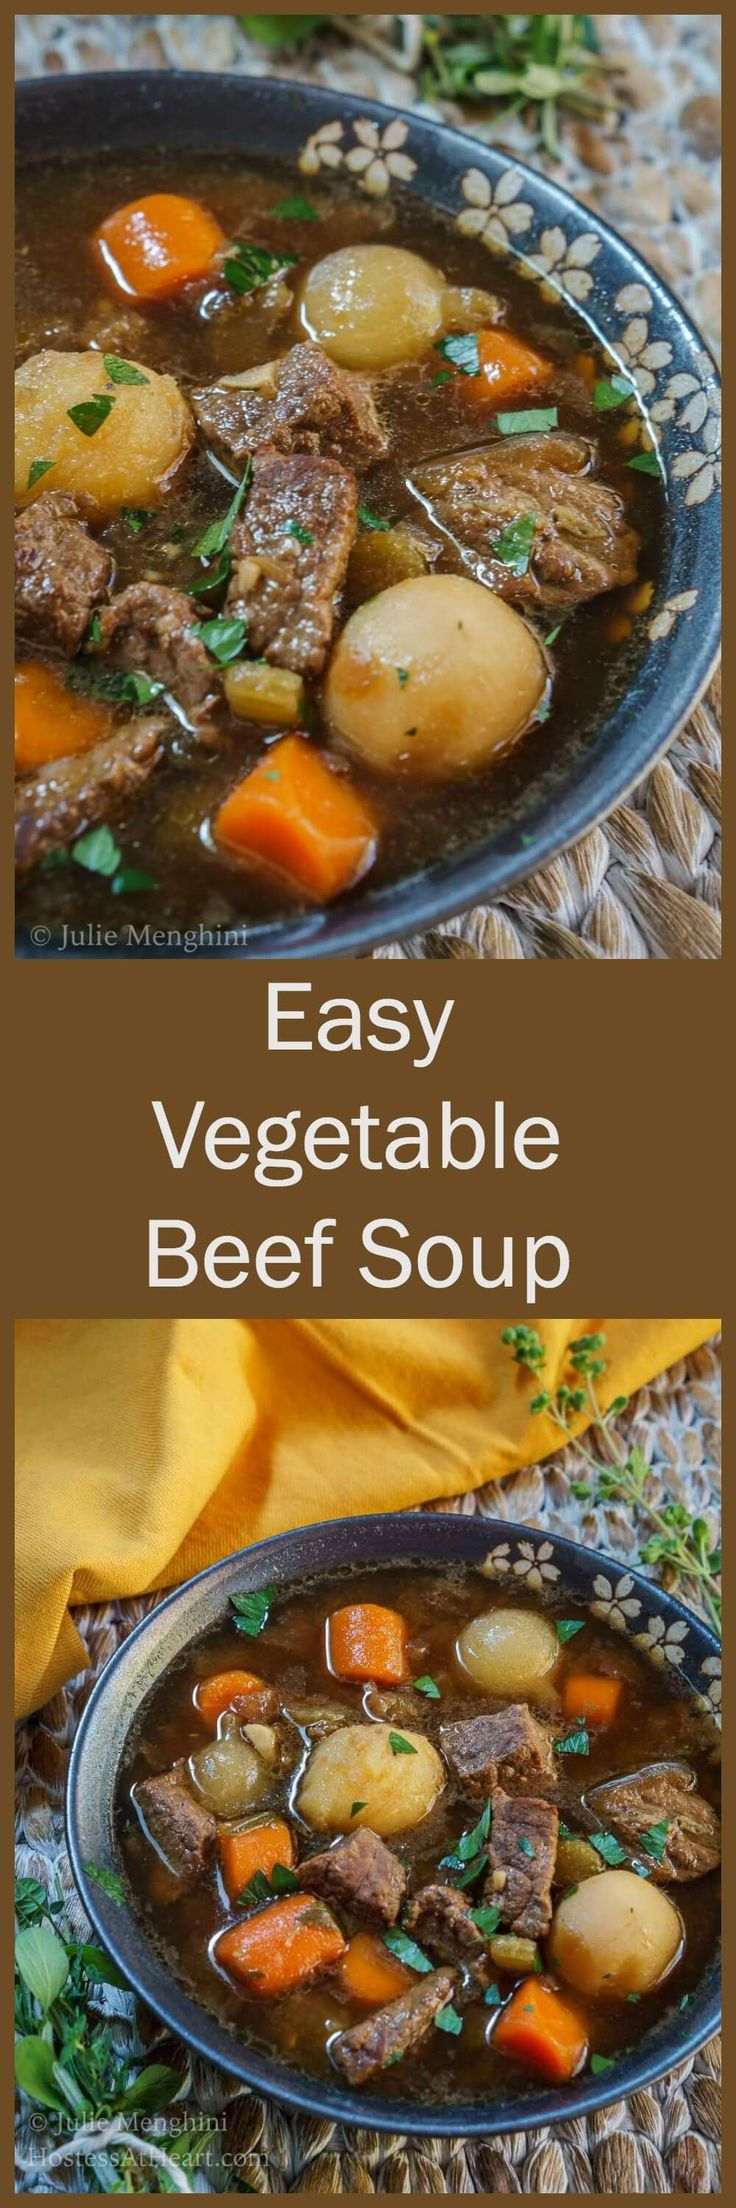 Best 25 vegetable beef soups ideas on pinterest for Easy tasty soup recipes